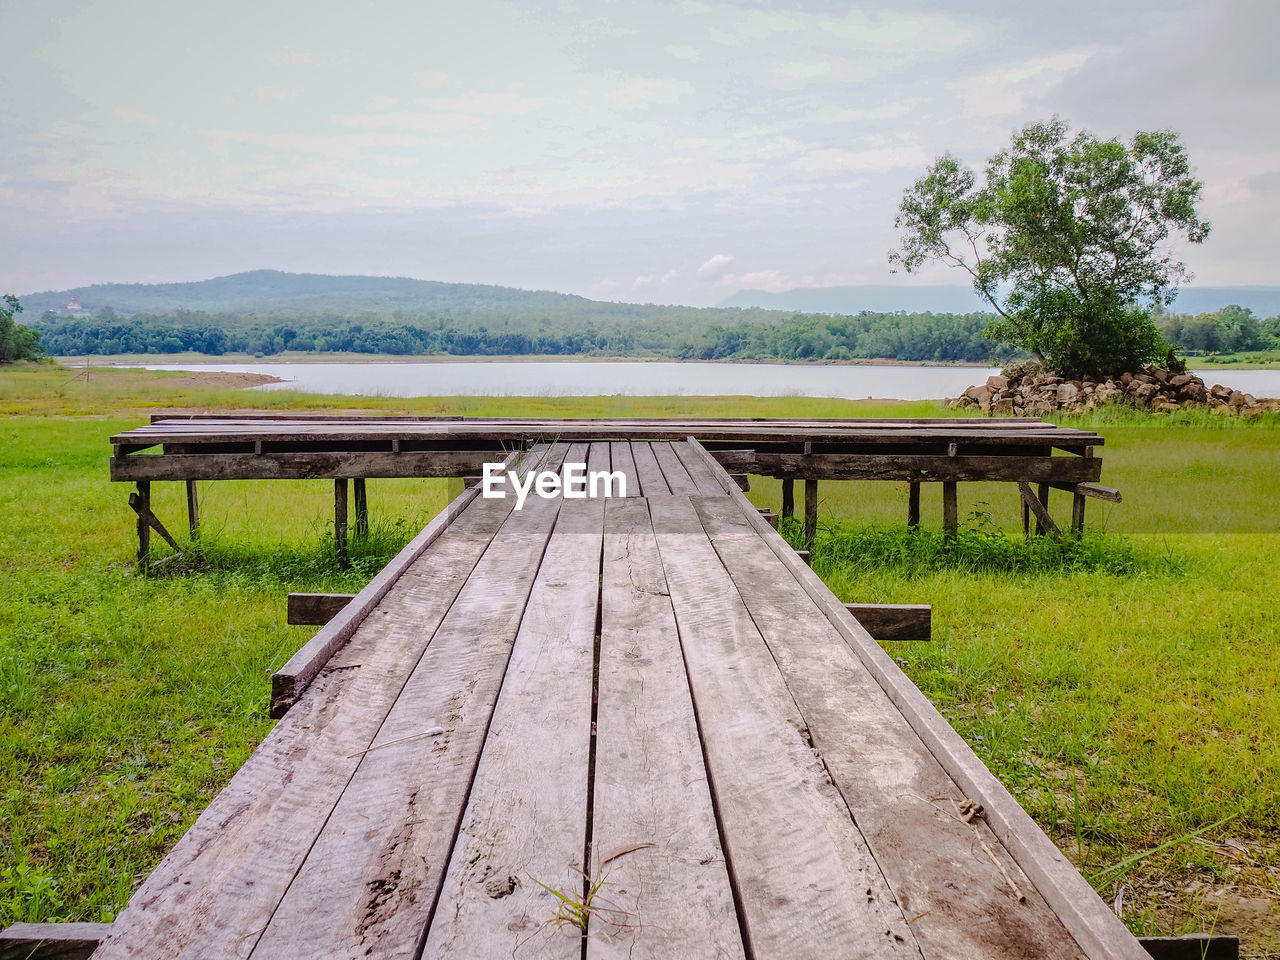 plant, grass, wood - material, bench, sky, tree, nature, scenics - nature, mountain, day, tranquility, seat, no people, empty, land, beauty in nature, field, picnic table, table, landscape, outdoors, park bench